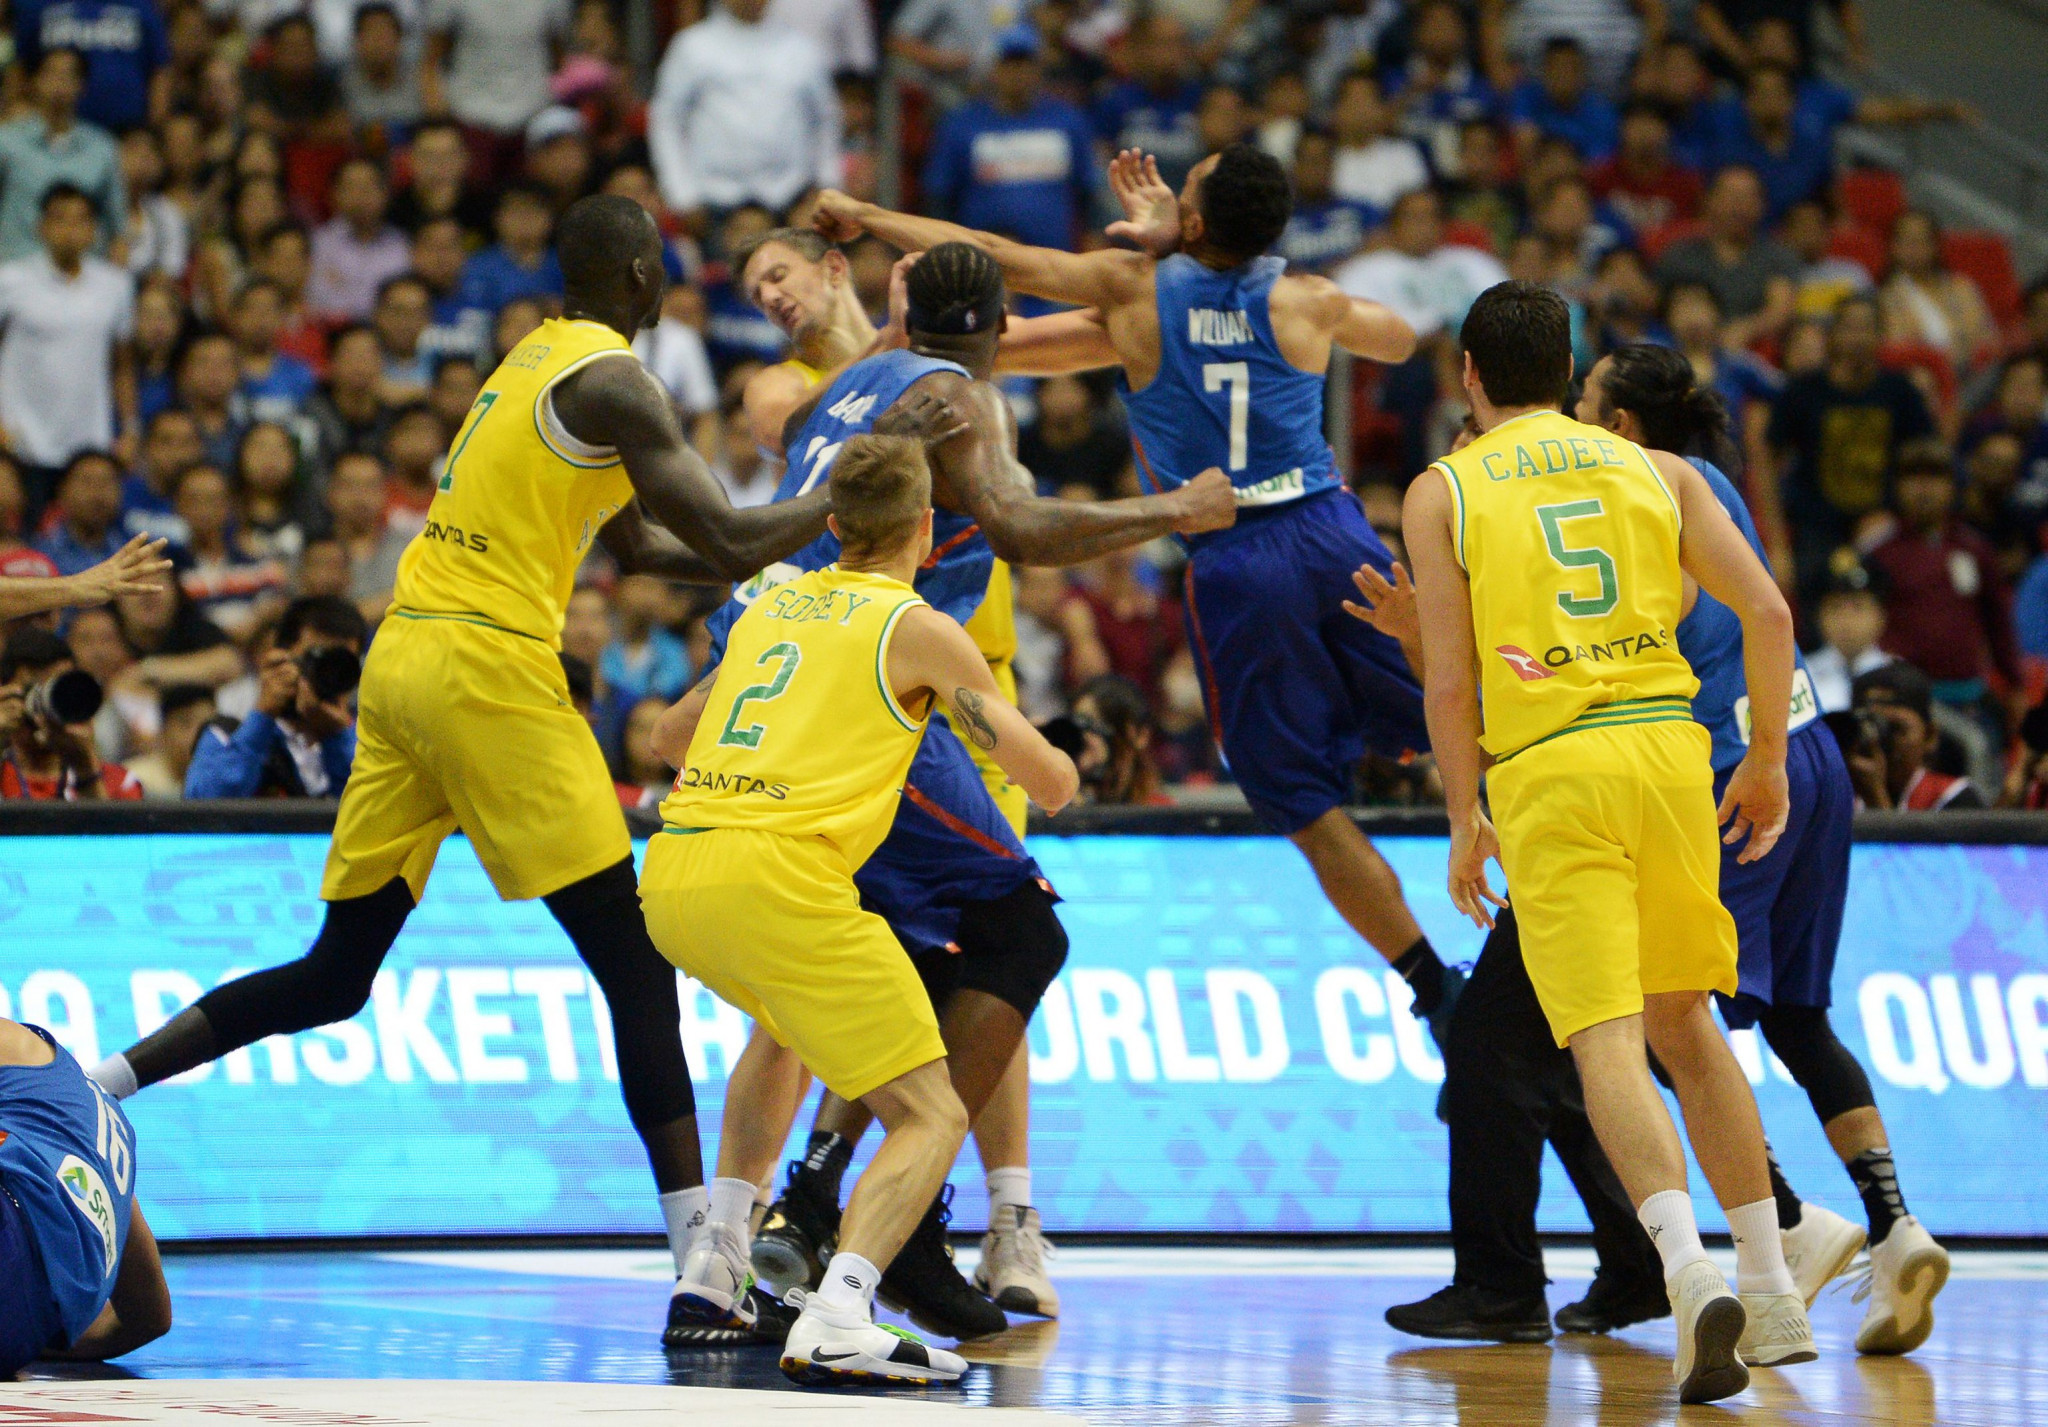 Players, coaches and referees banned after mass brawl in FIBA World Cup qualifier